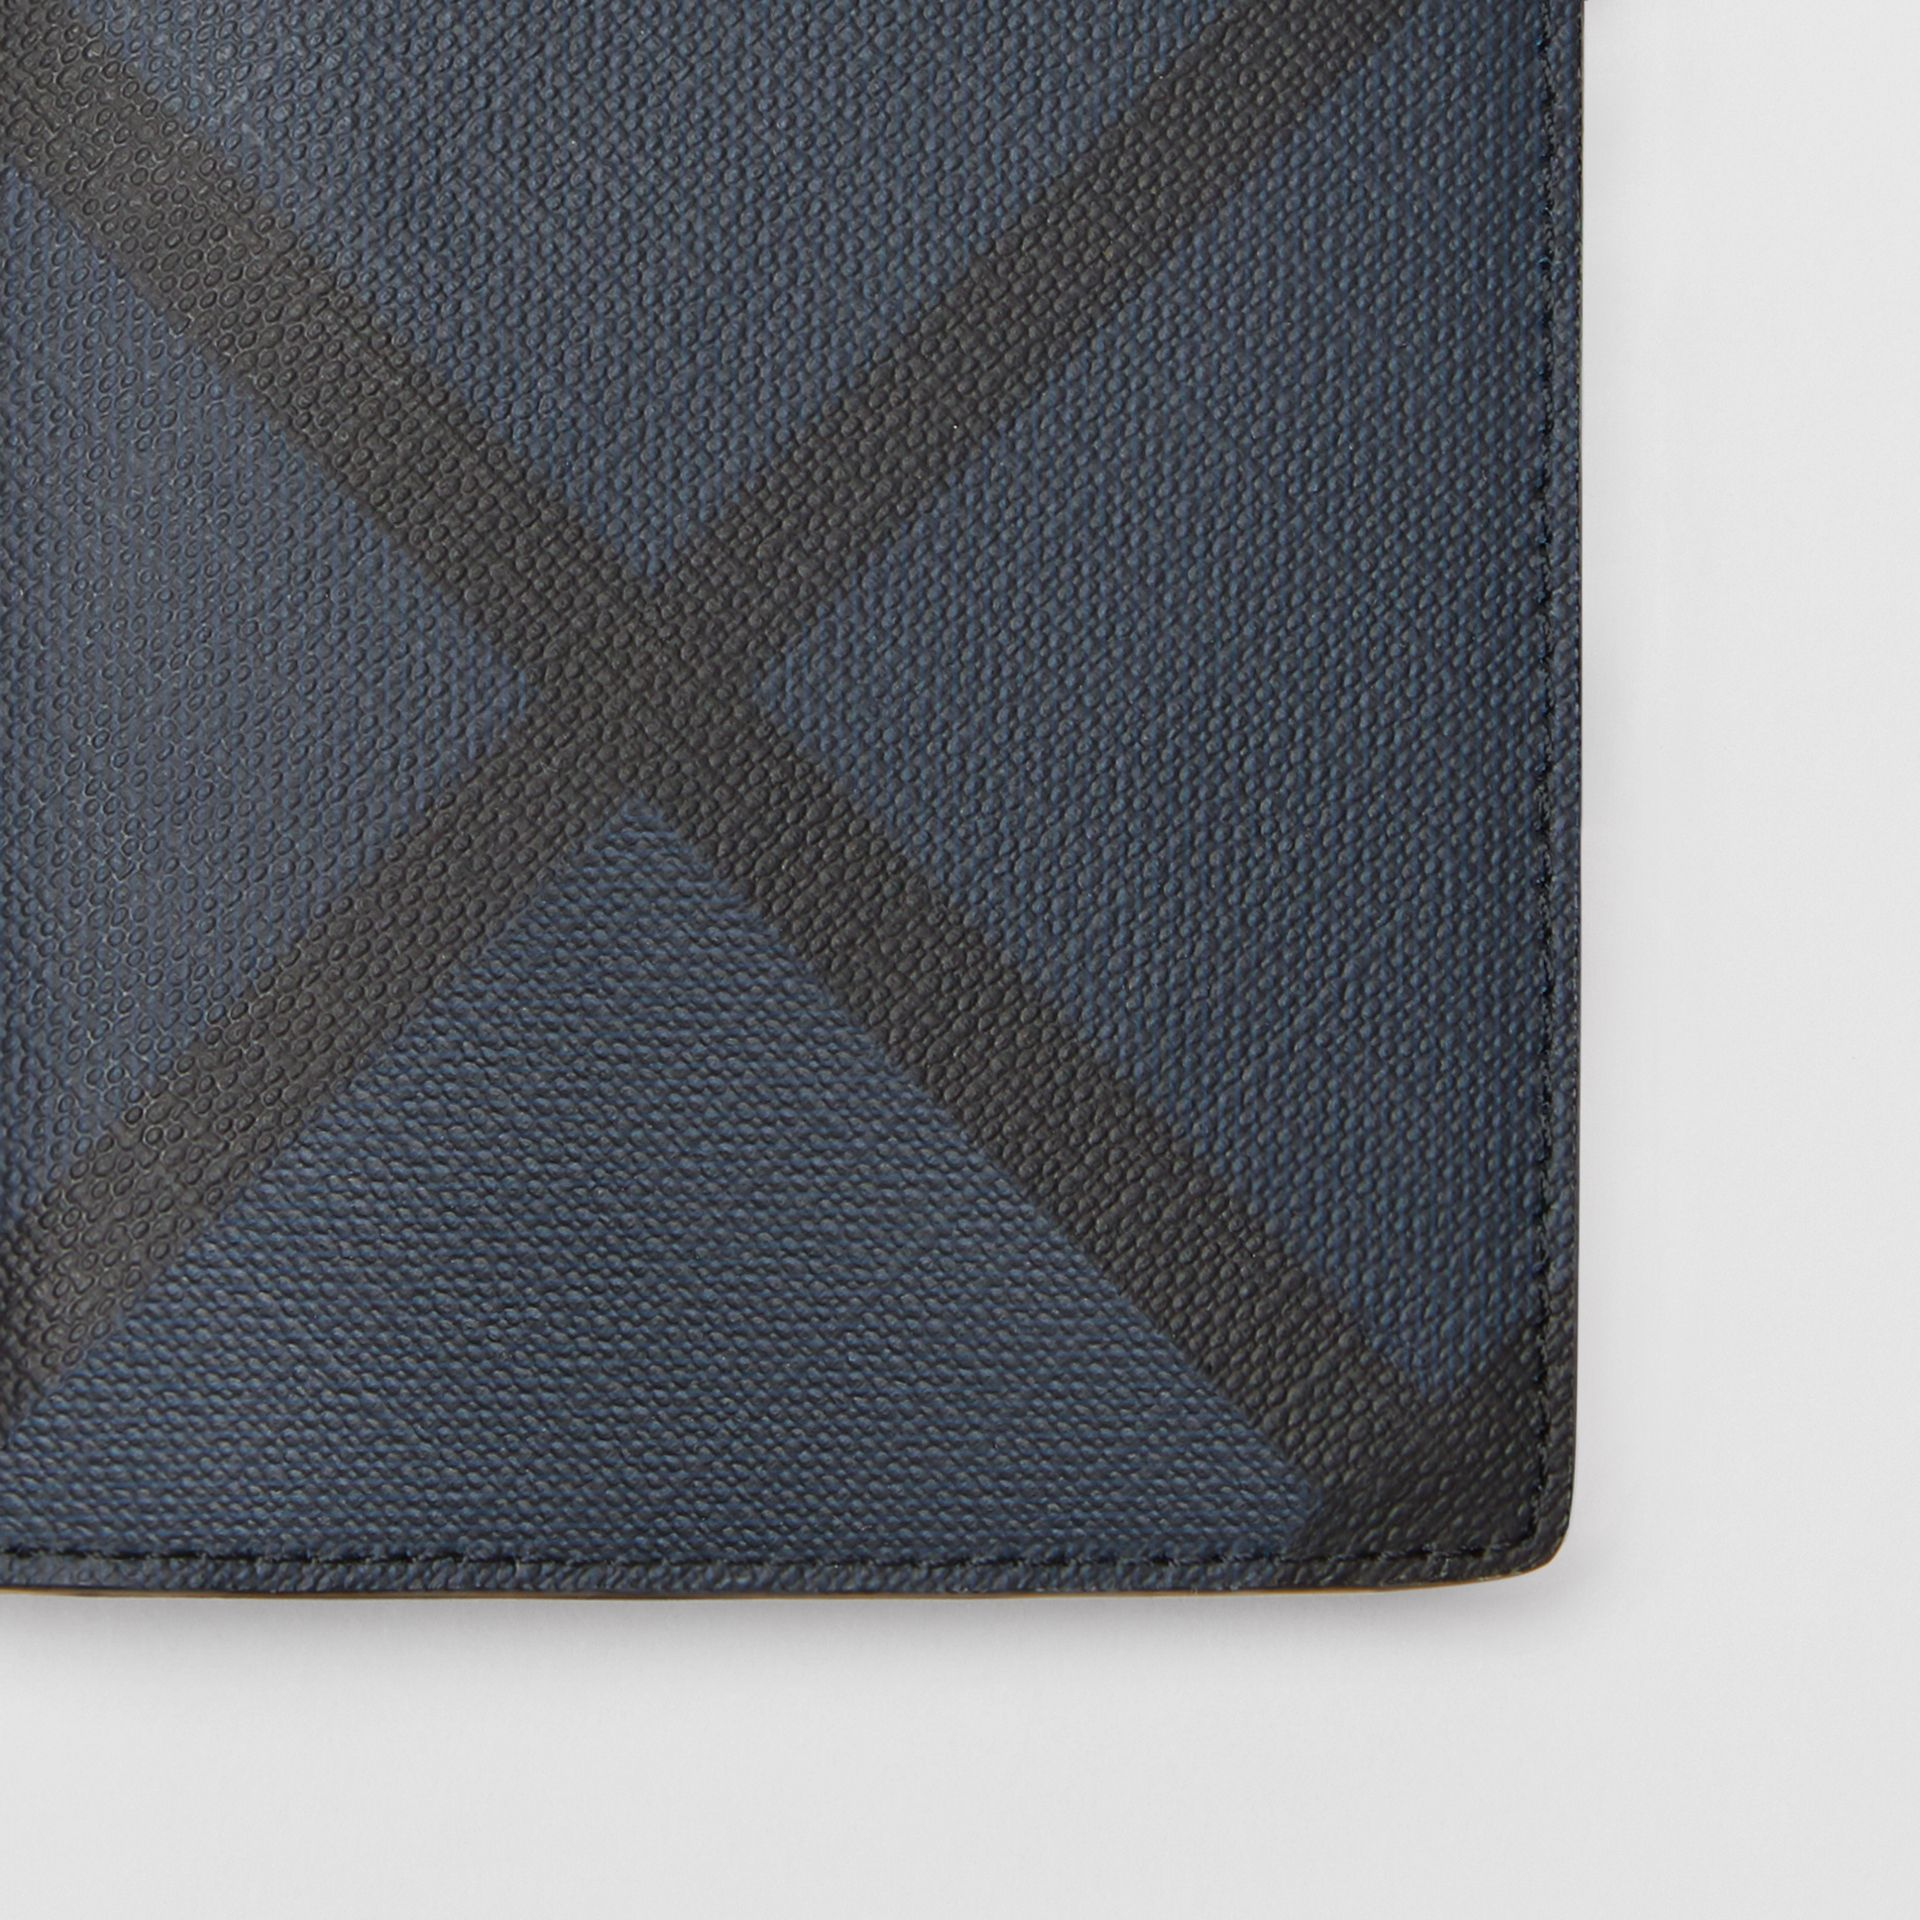 London Check and Leather Continental Wallet in Navy/black - Men | Burberry Singapore - gallery image 1